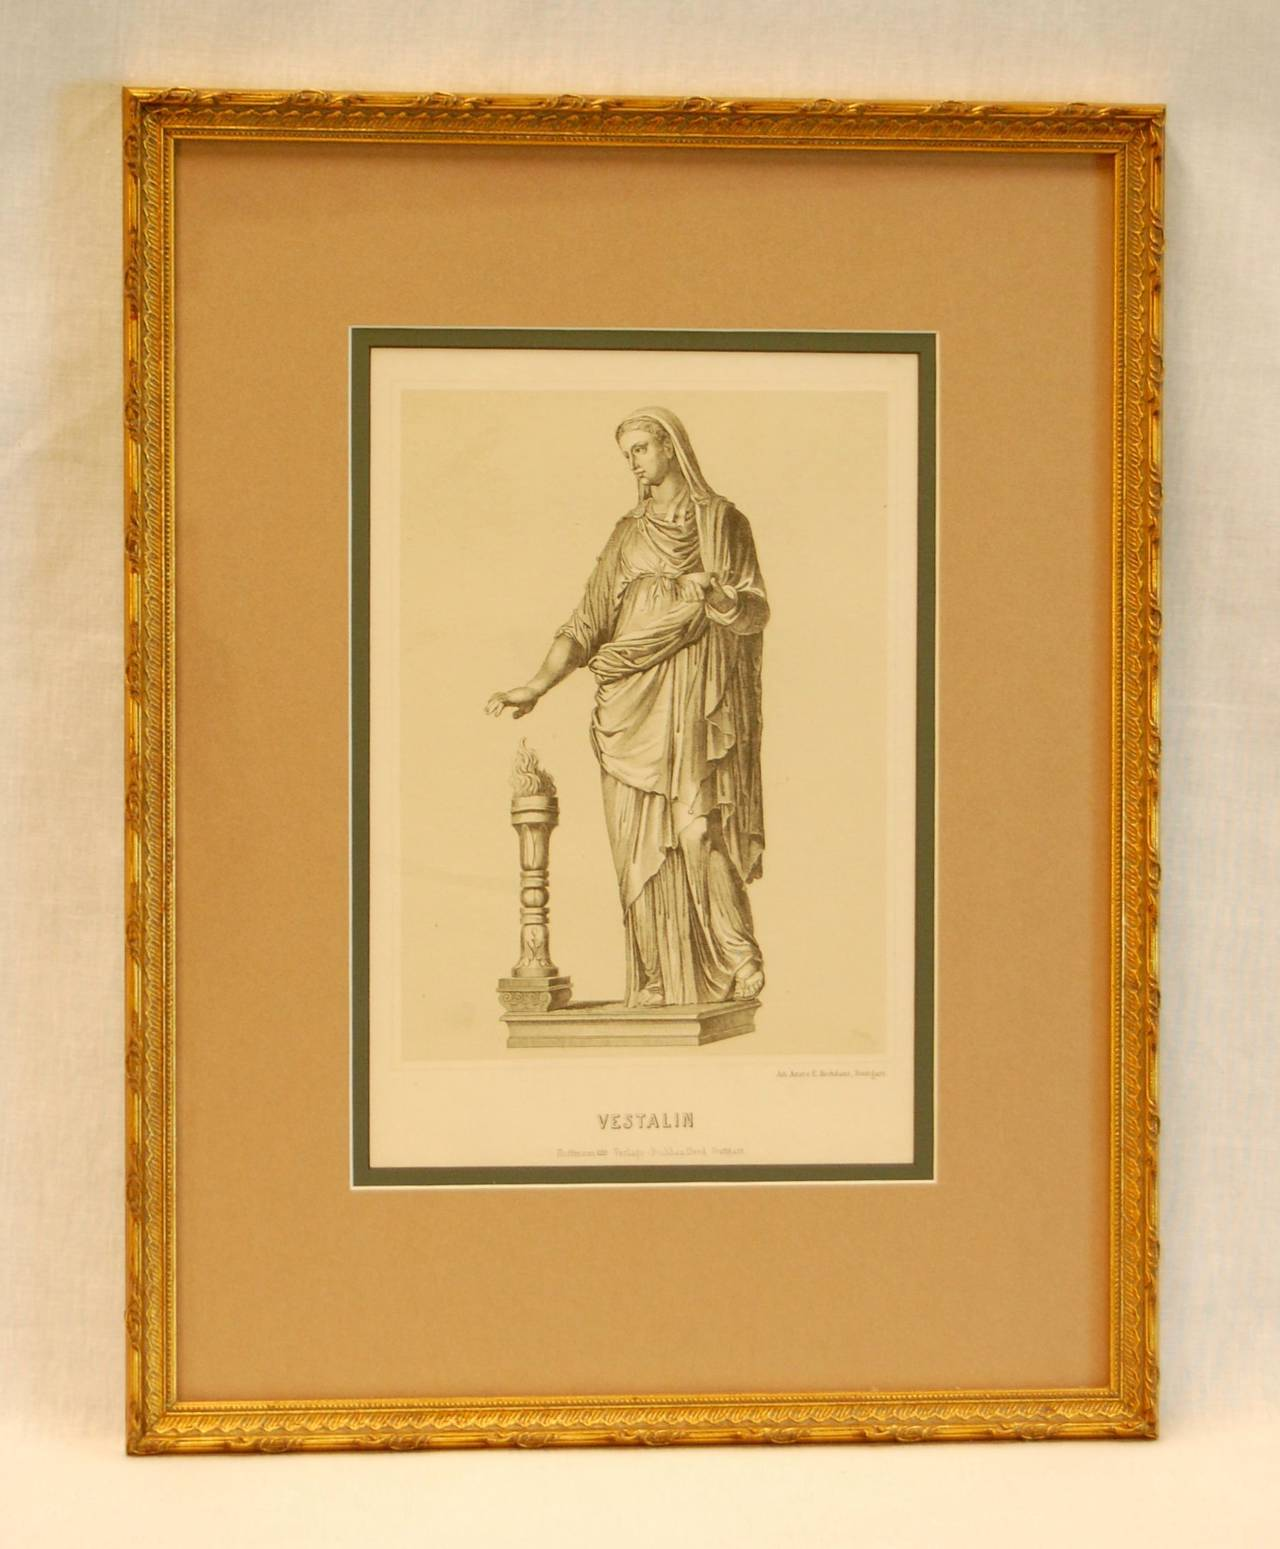 Framed German Lithograph by Anst. V. E. Hochdanz, printed by The Hoffmann Printing House of Stuttgart Germany, mid-19th century. Visible print size: 7 1/8 x 10 5/8.